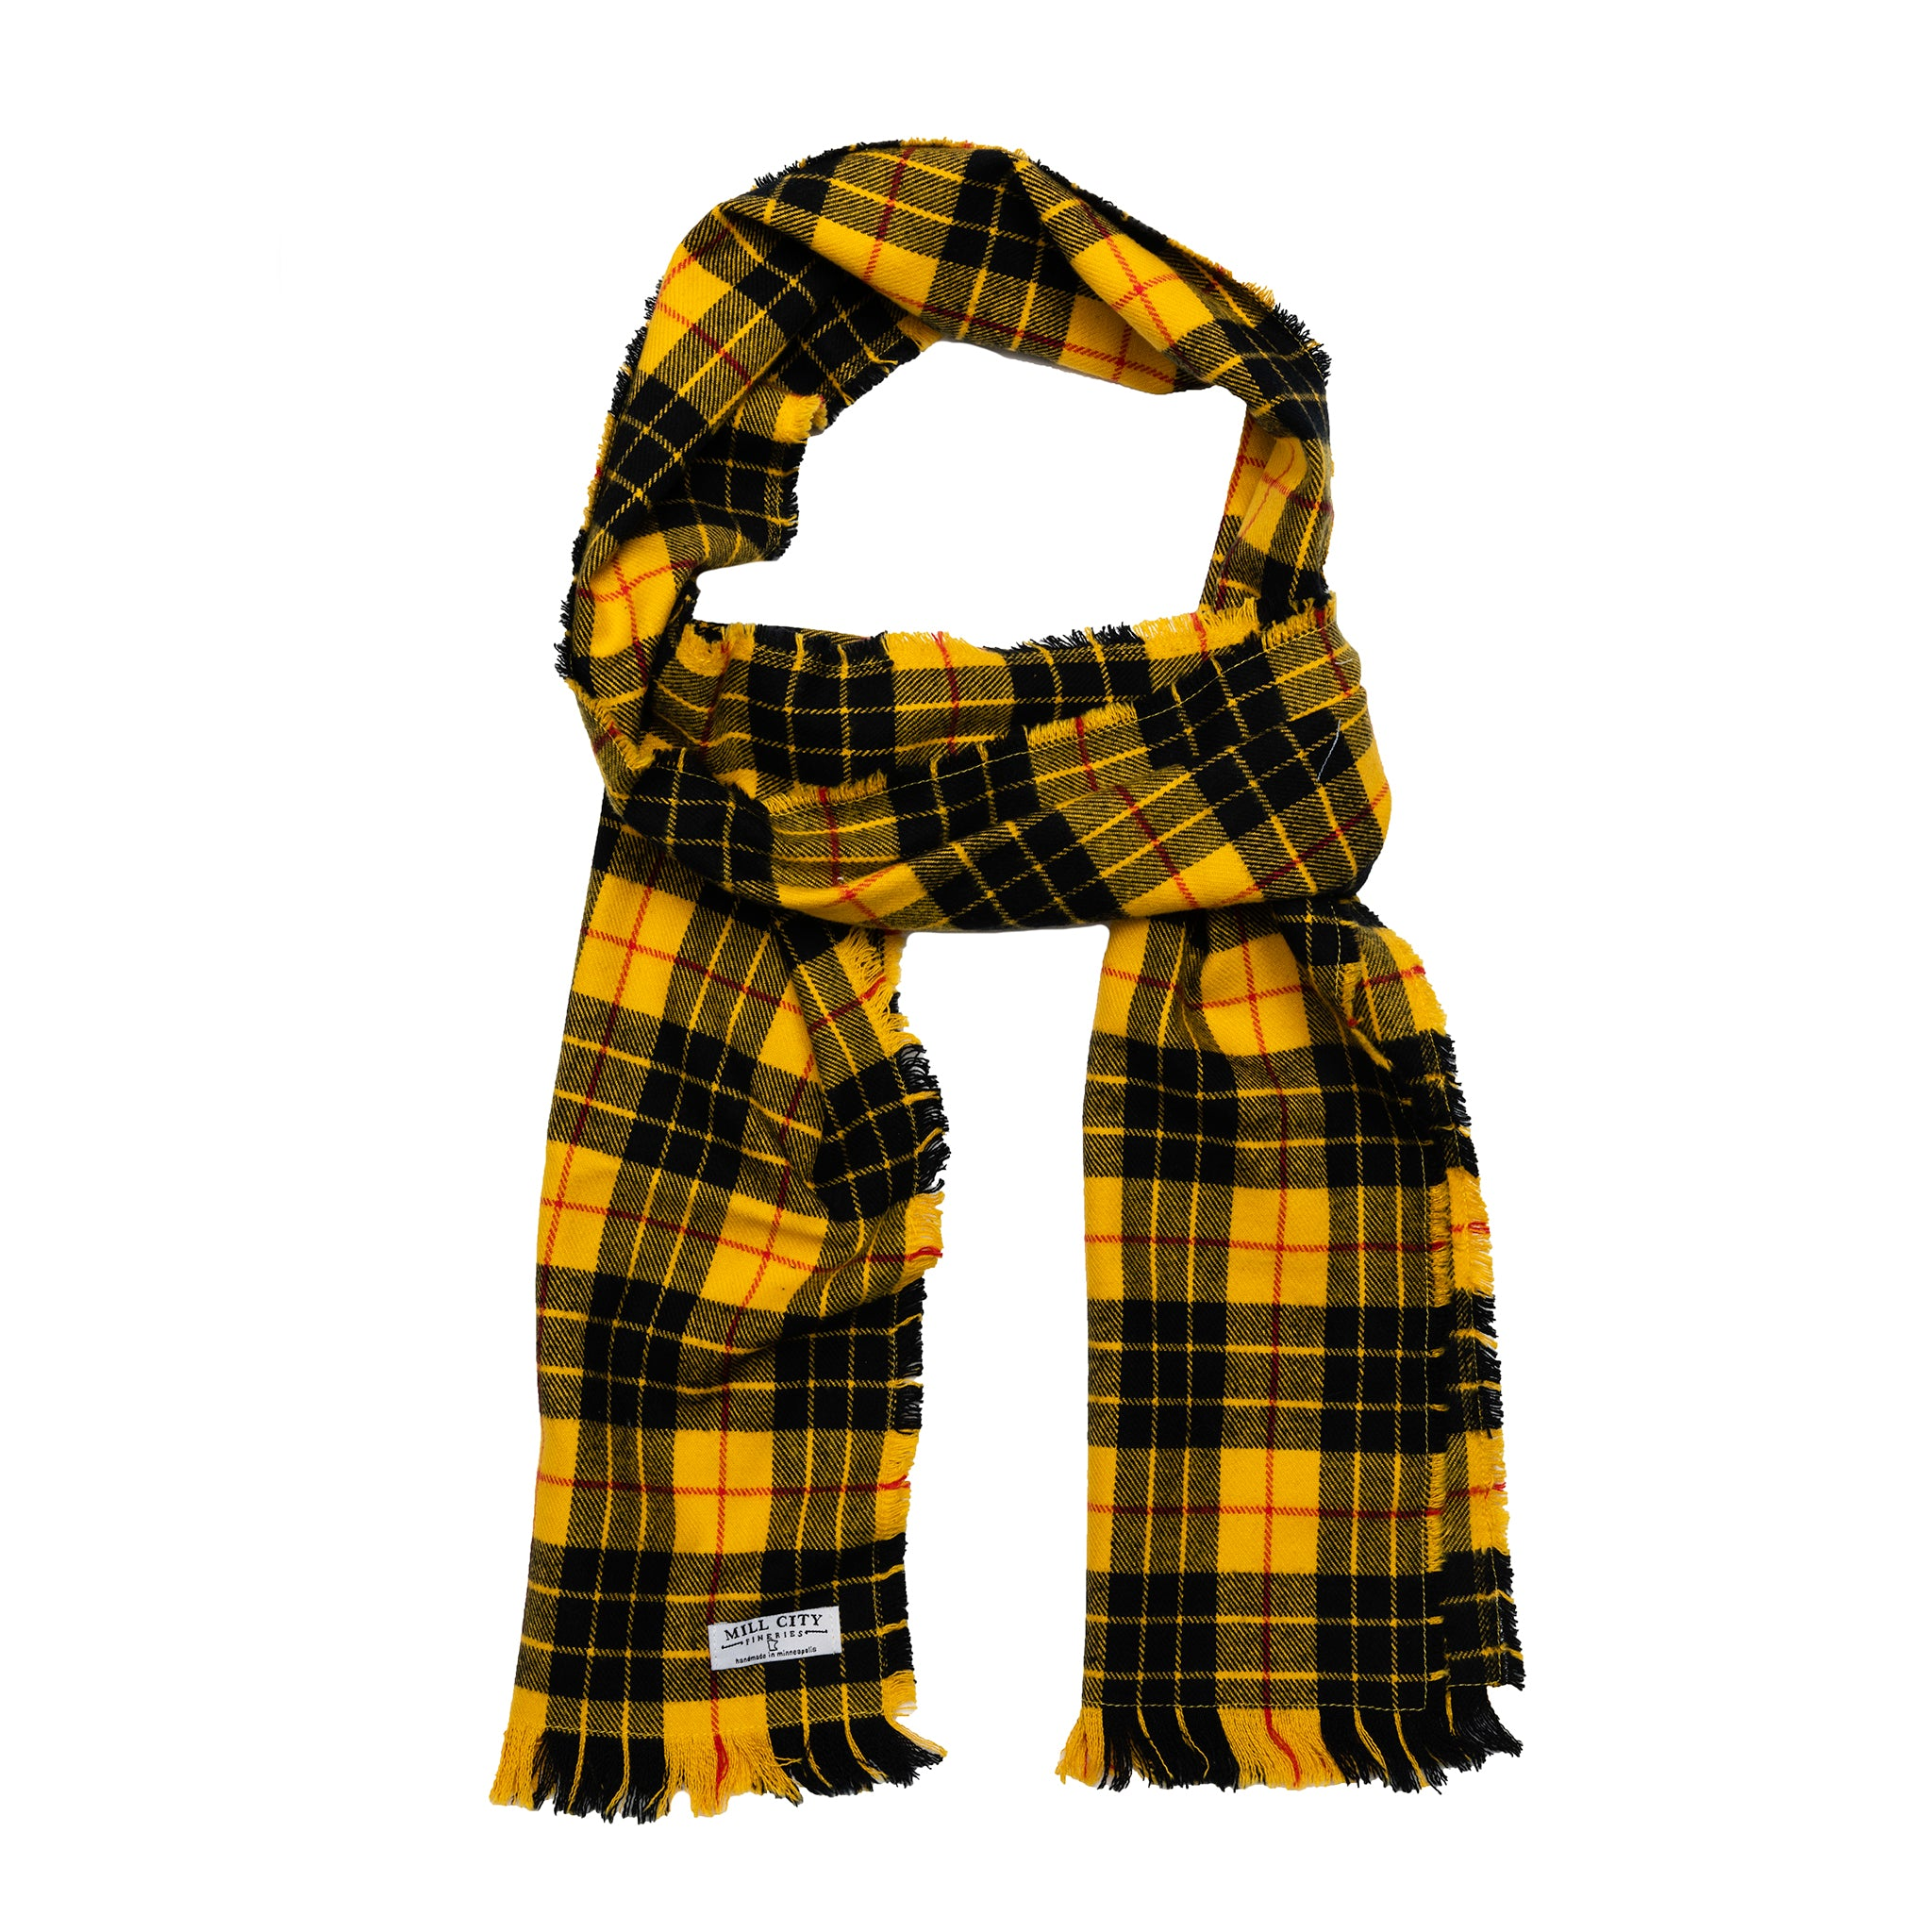 Black & Yellow Plaid Flannel Scarf